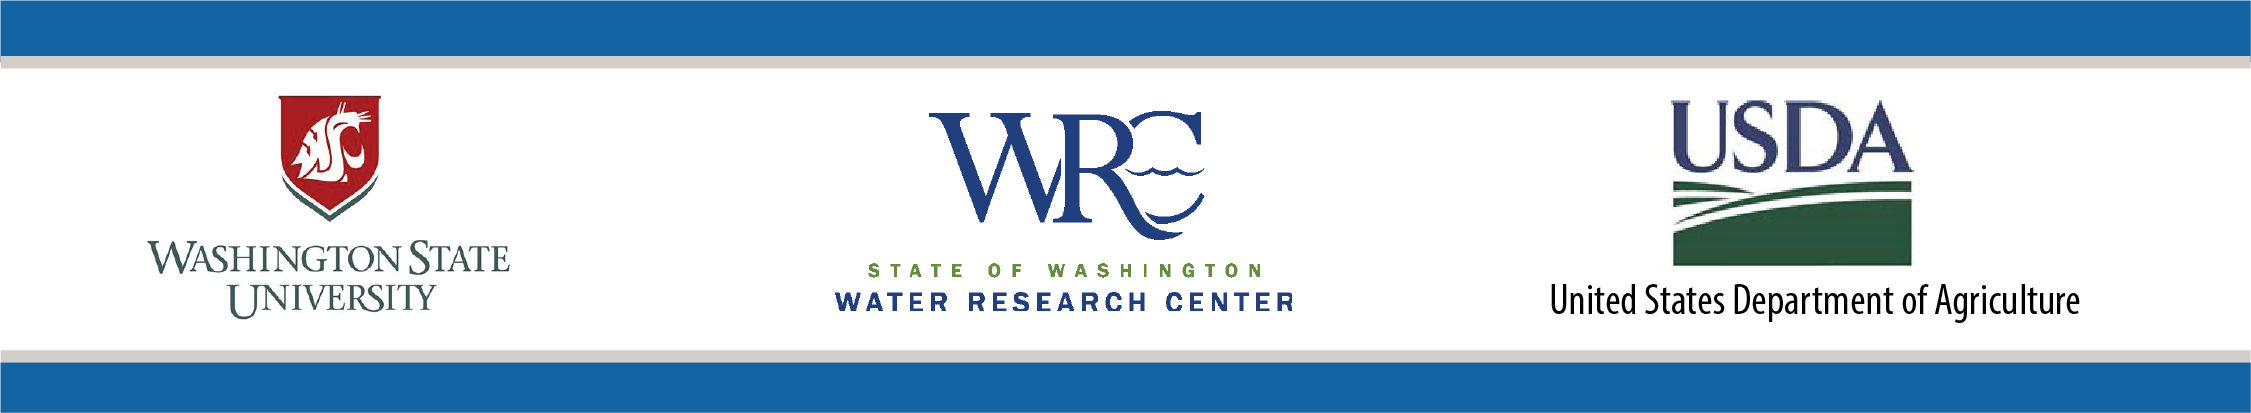 Logos for Washington State University, Washington Water Research Center, and United States Department of Agriculture